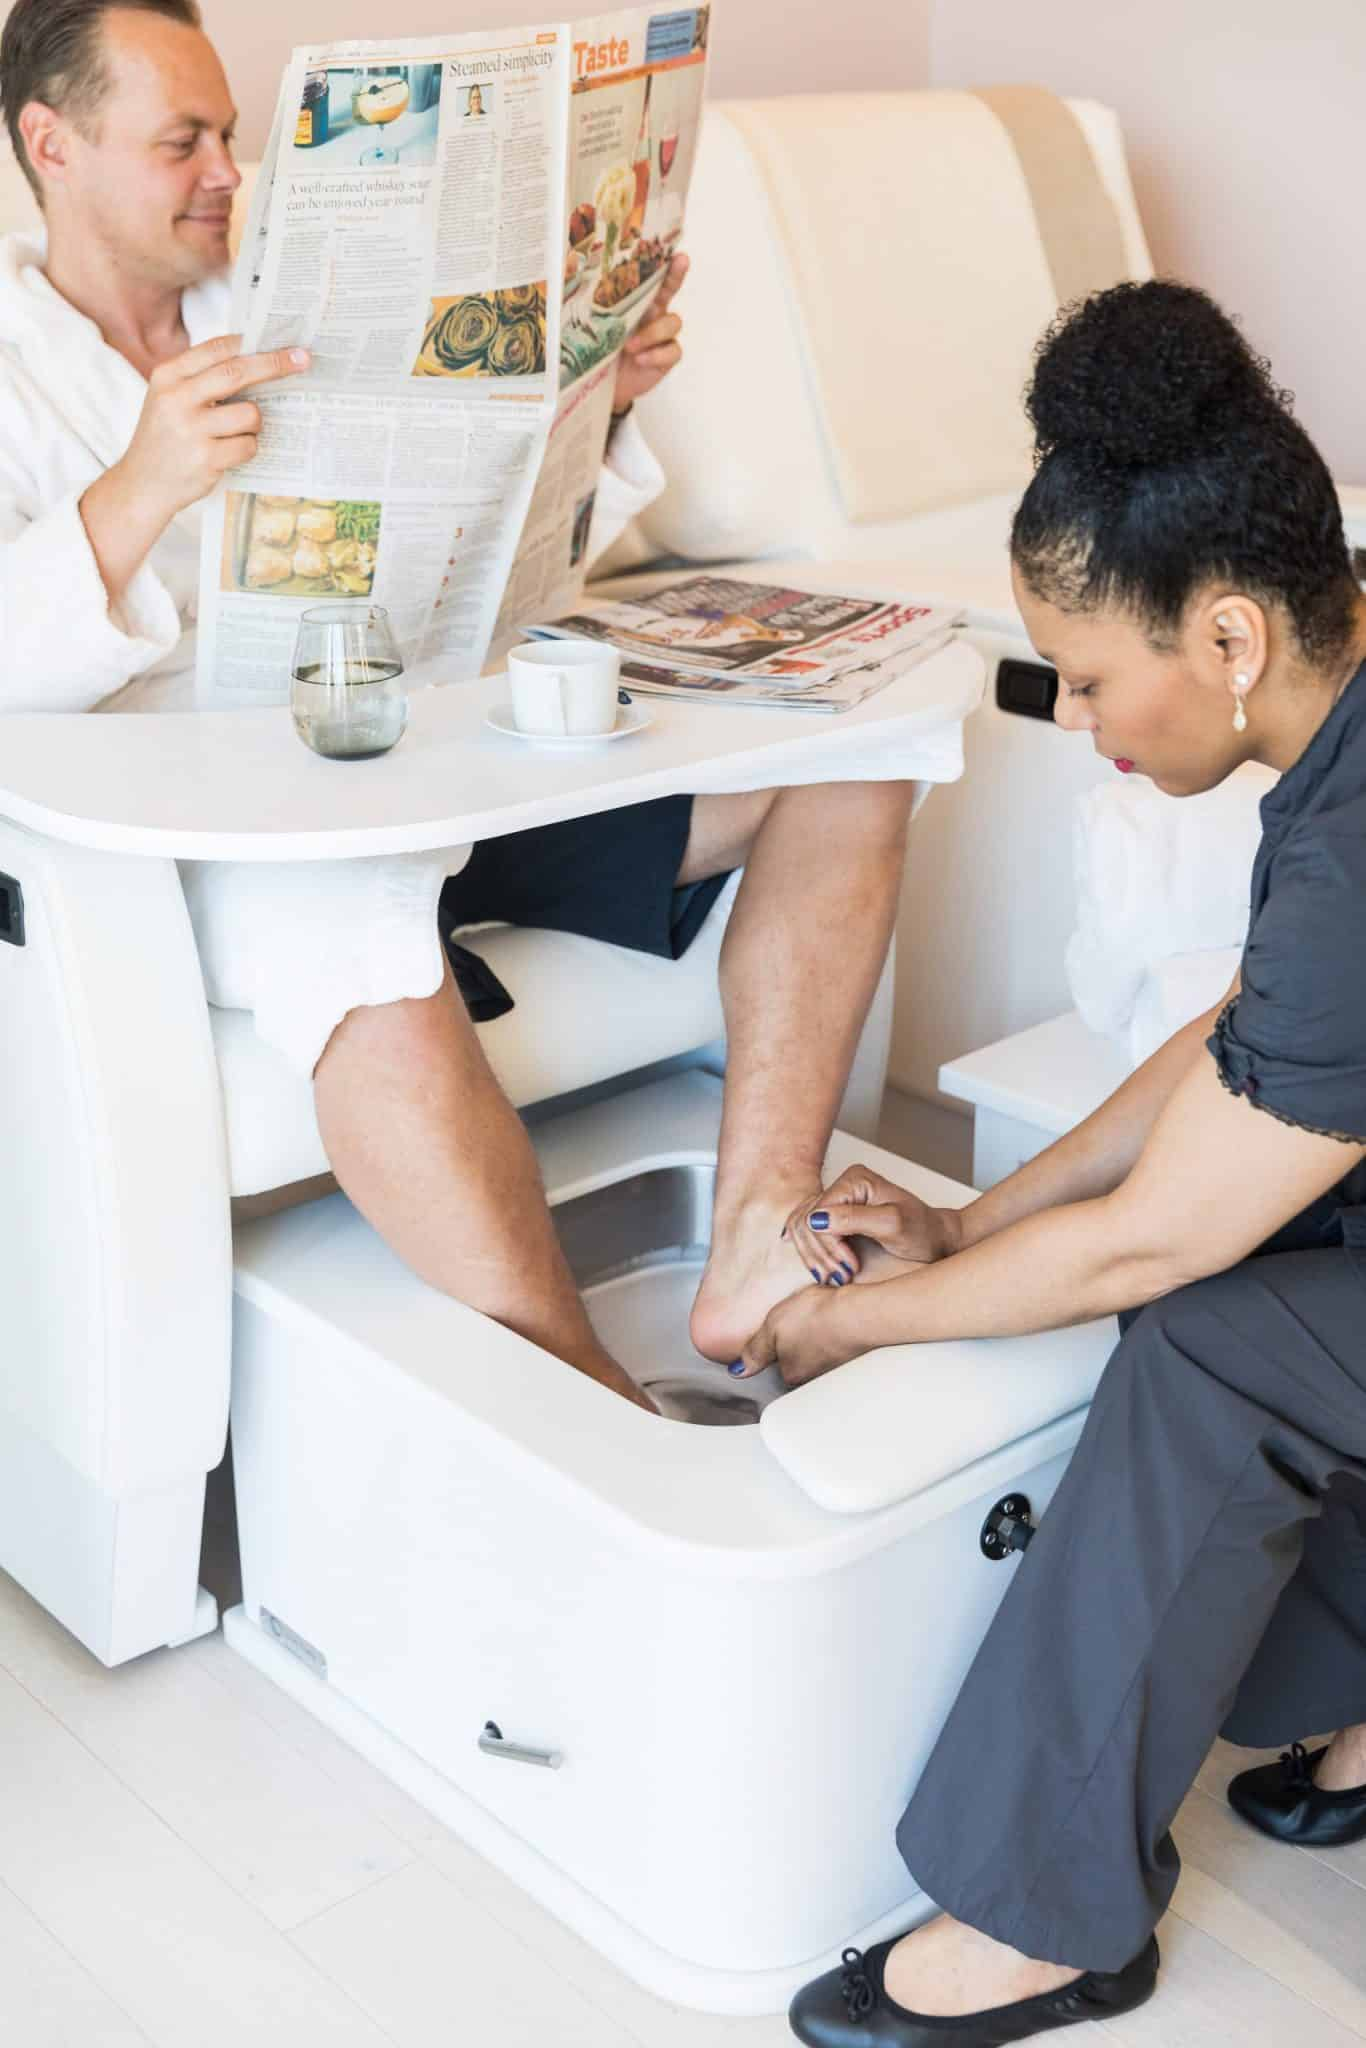 A person reading the newspaper and getting a pedicure